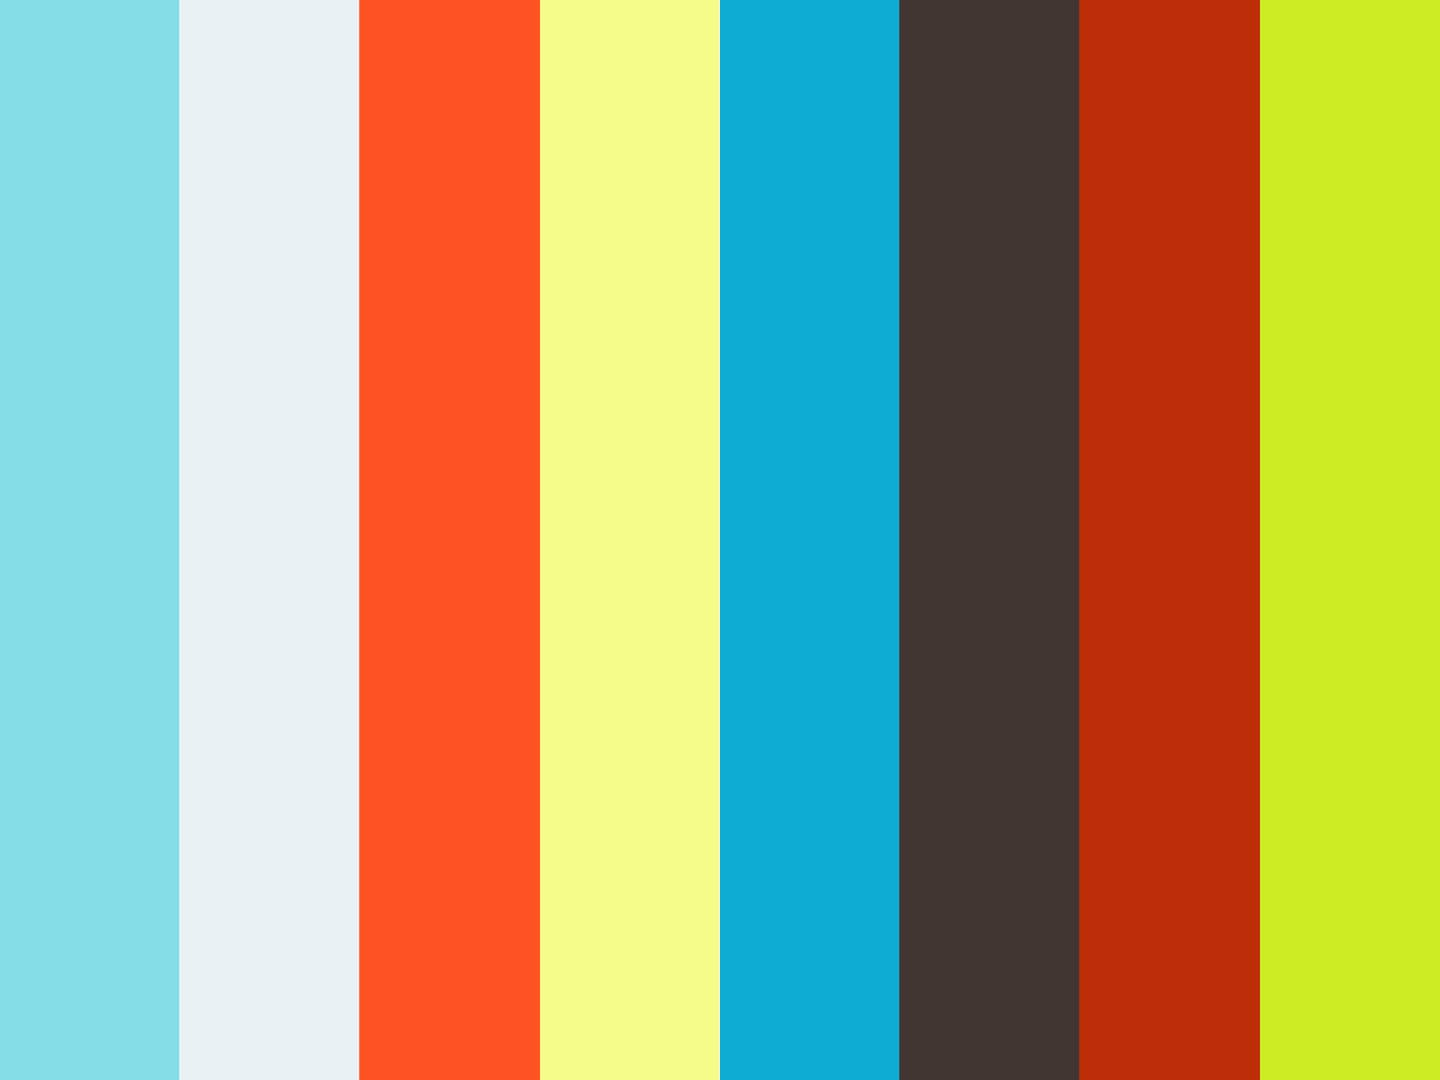 backyard baseball 2001 on vimeo